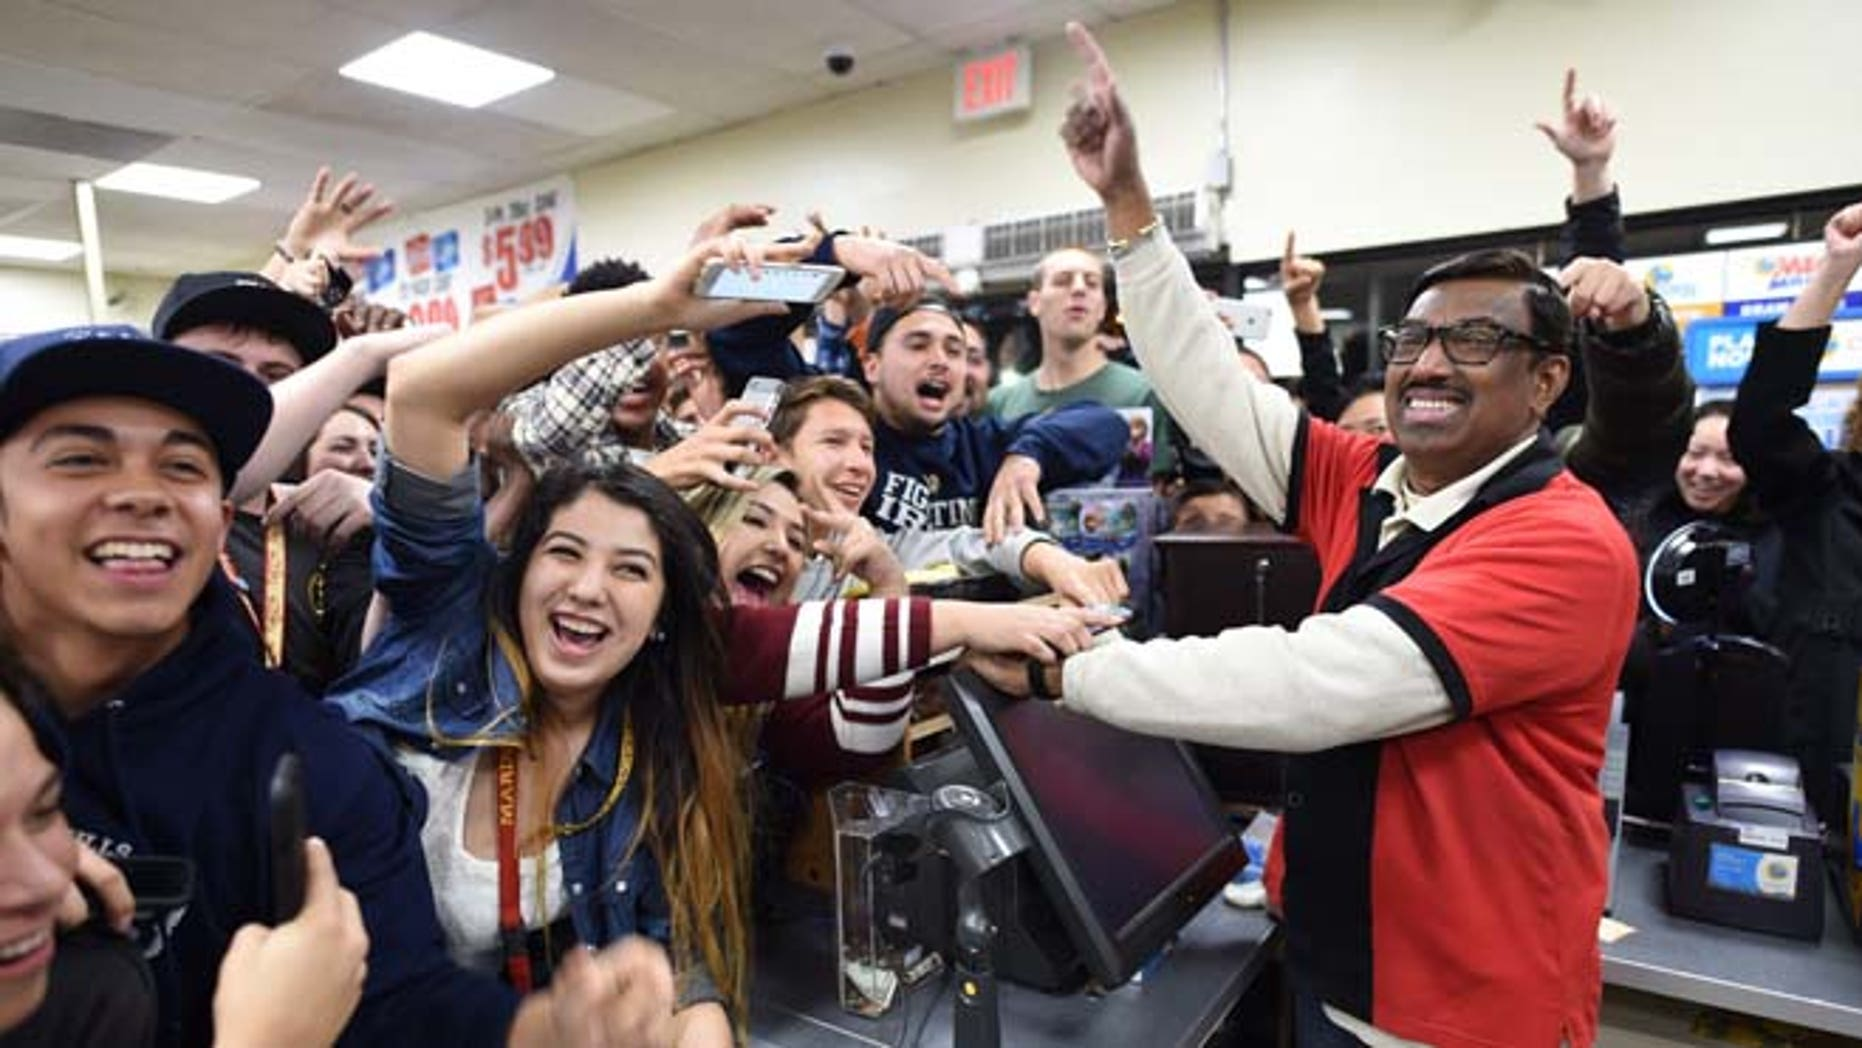 7-Eleven store clerk M. Faroqui celebrates with customers after learning the store sold a winning Powerball ticket on Wednesday, Jan. 13, 2016 in Chino Hills, Calif.  One winning ticket was sold at the store located in suburban Los Angeles said Alex Traverso, a spokesman for California lottery. The identity of the winner is not yet known. (Will Lester/The Sun via AP) MANDATORY CREDIT